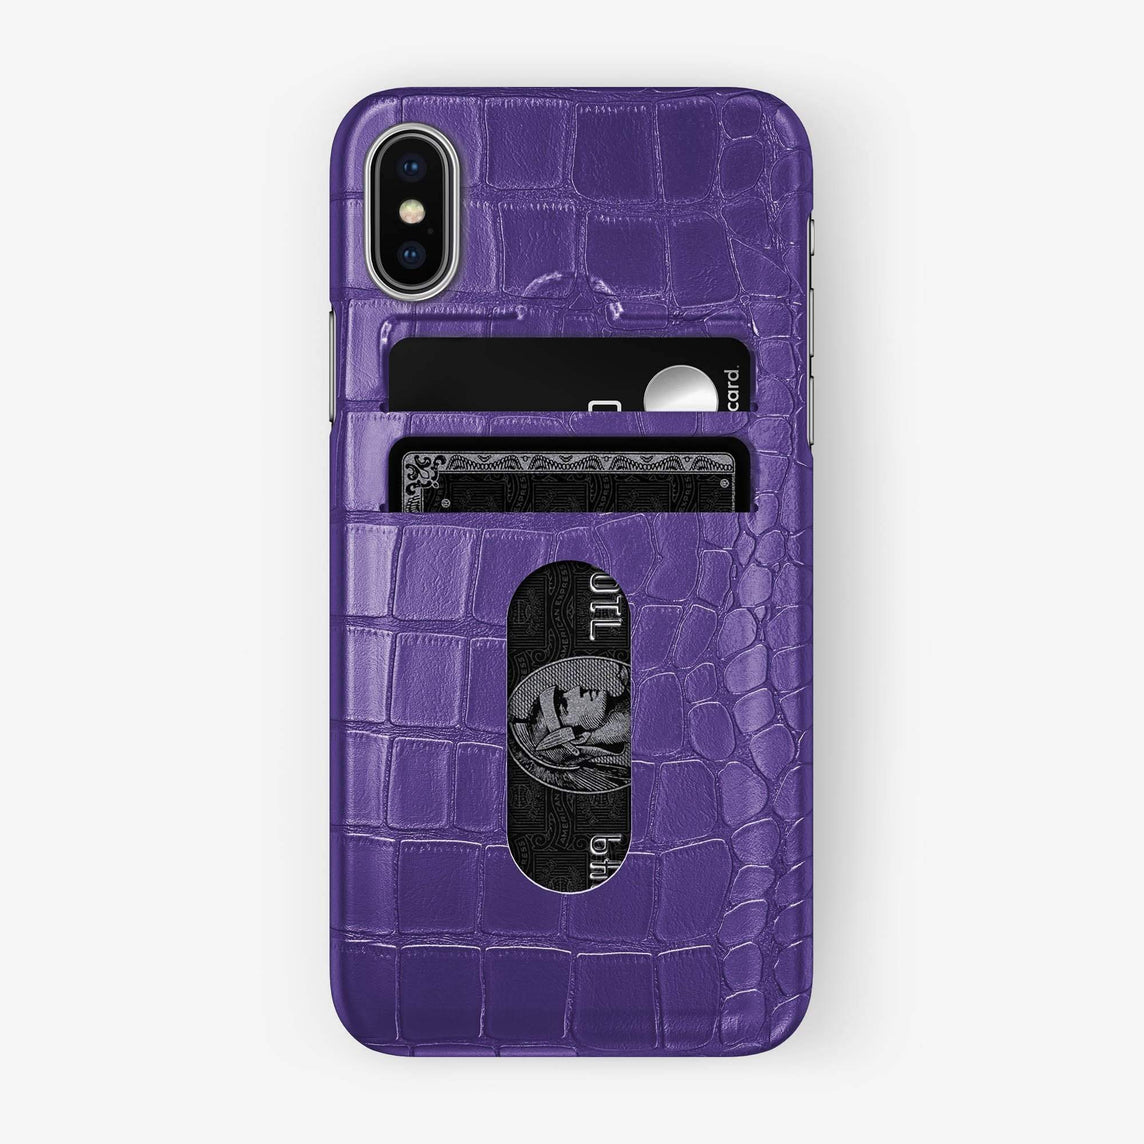 Alligator Card Holder Case iPhone Xs Max | Purple - Stainless Steel - Hadoro